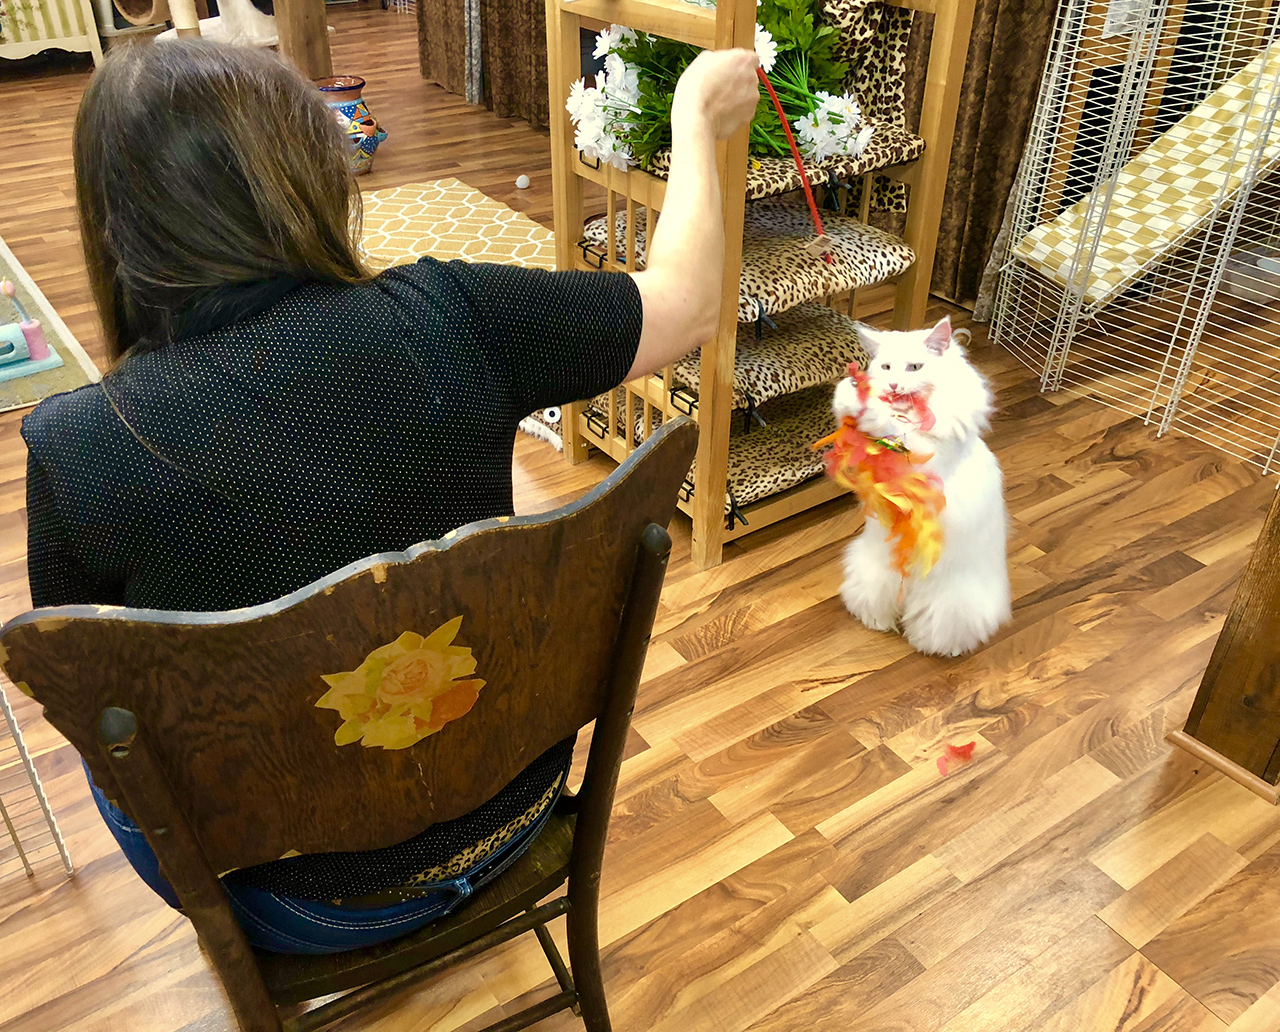 Playing with a White Long Hair Cat